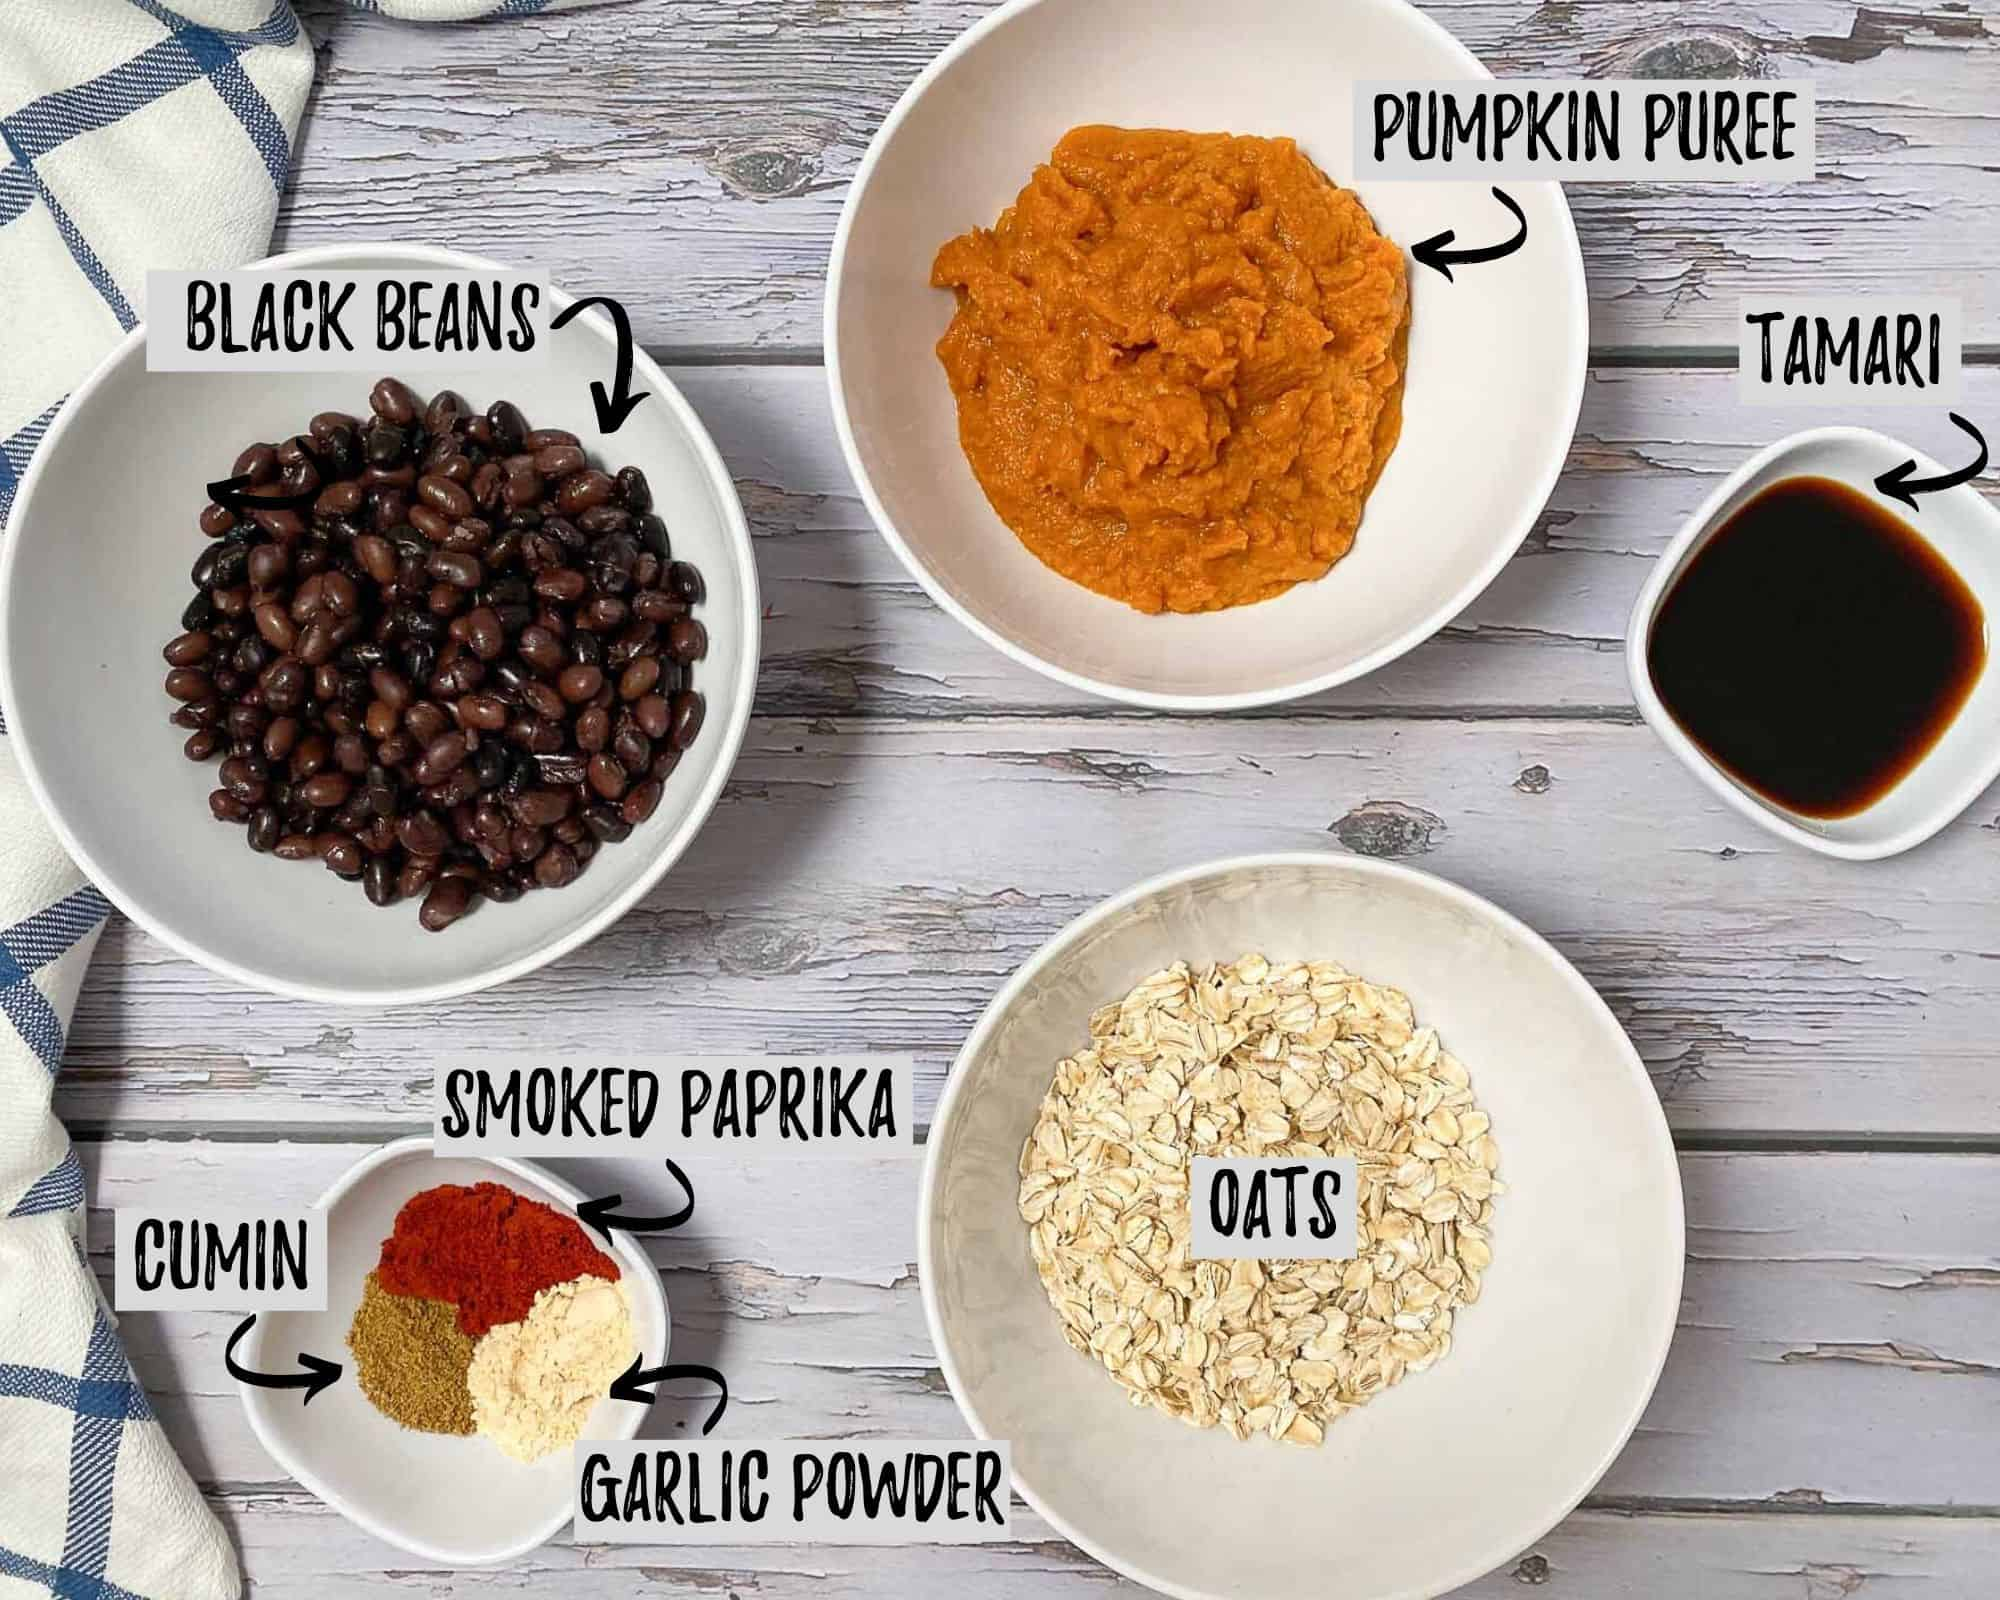 bowl of mashed pumpkin, bowl of black beans, bowl of oats and seasoning